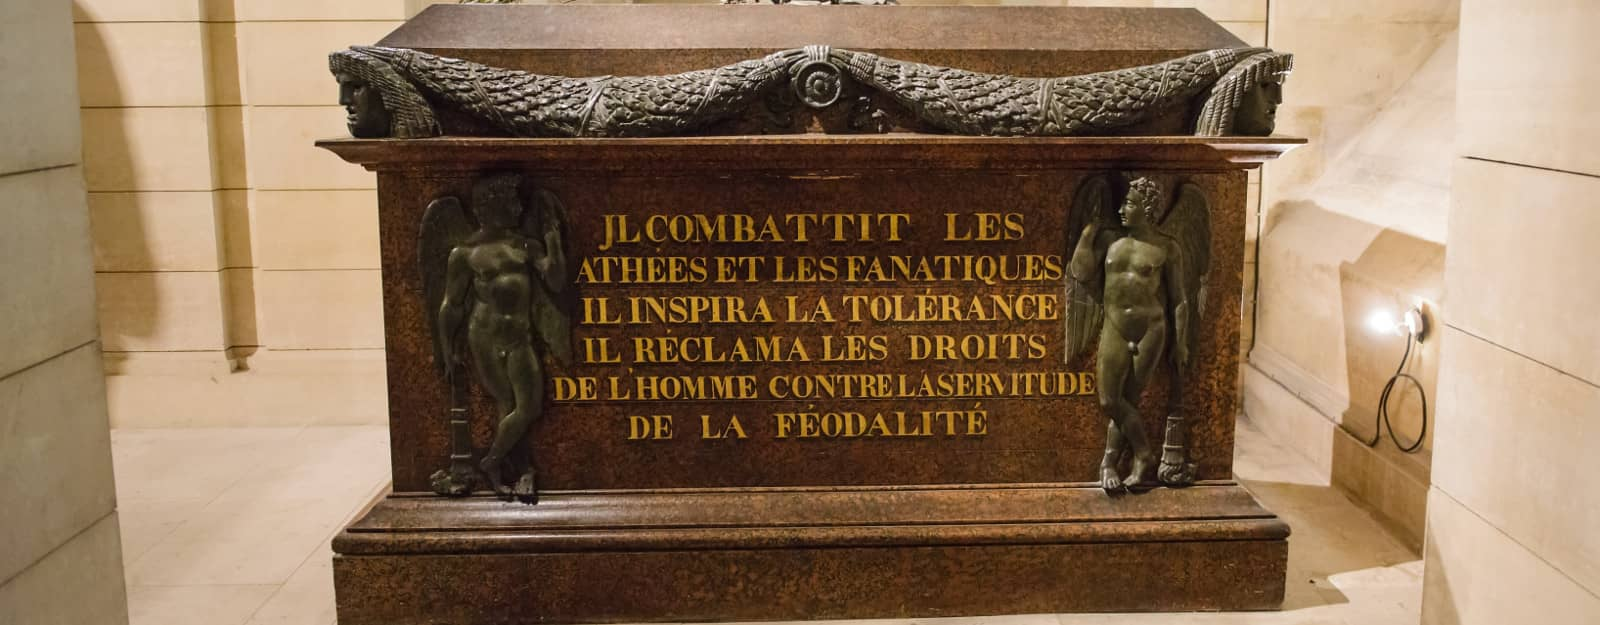 Pantheon Paris Voltaire's tomb photo